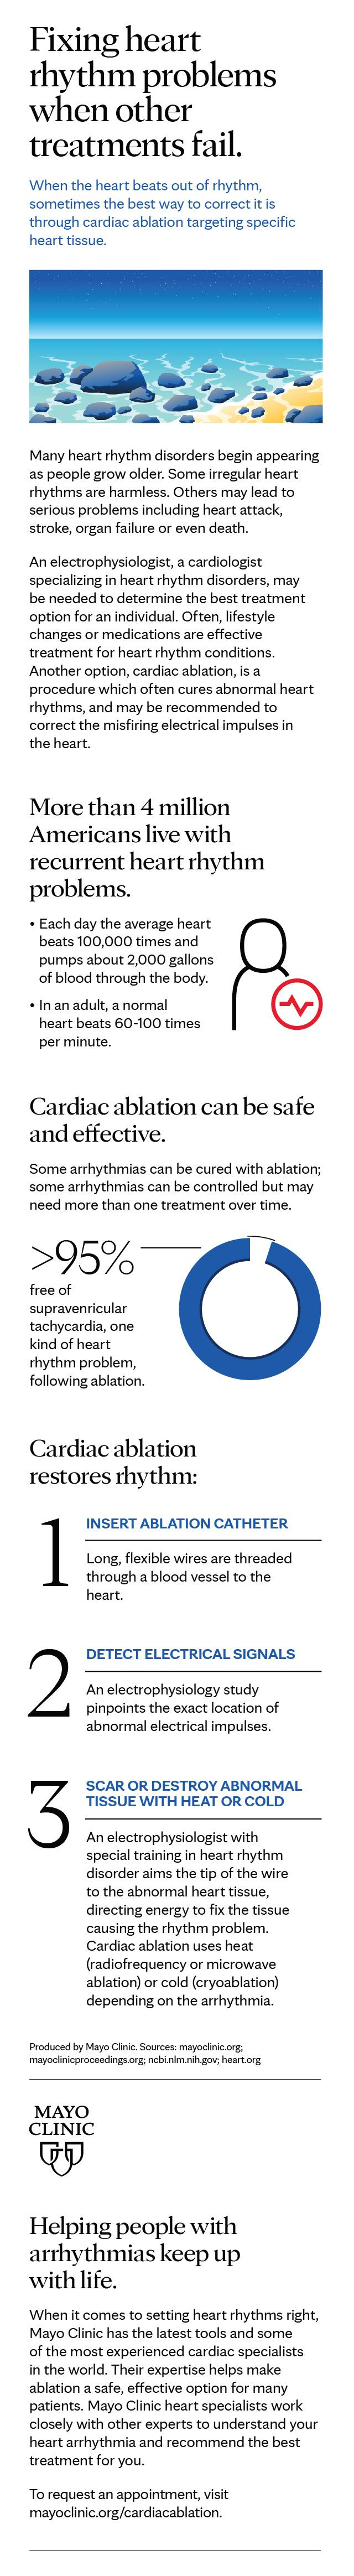 Infographic for cardiac ablation